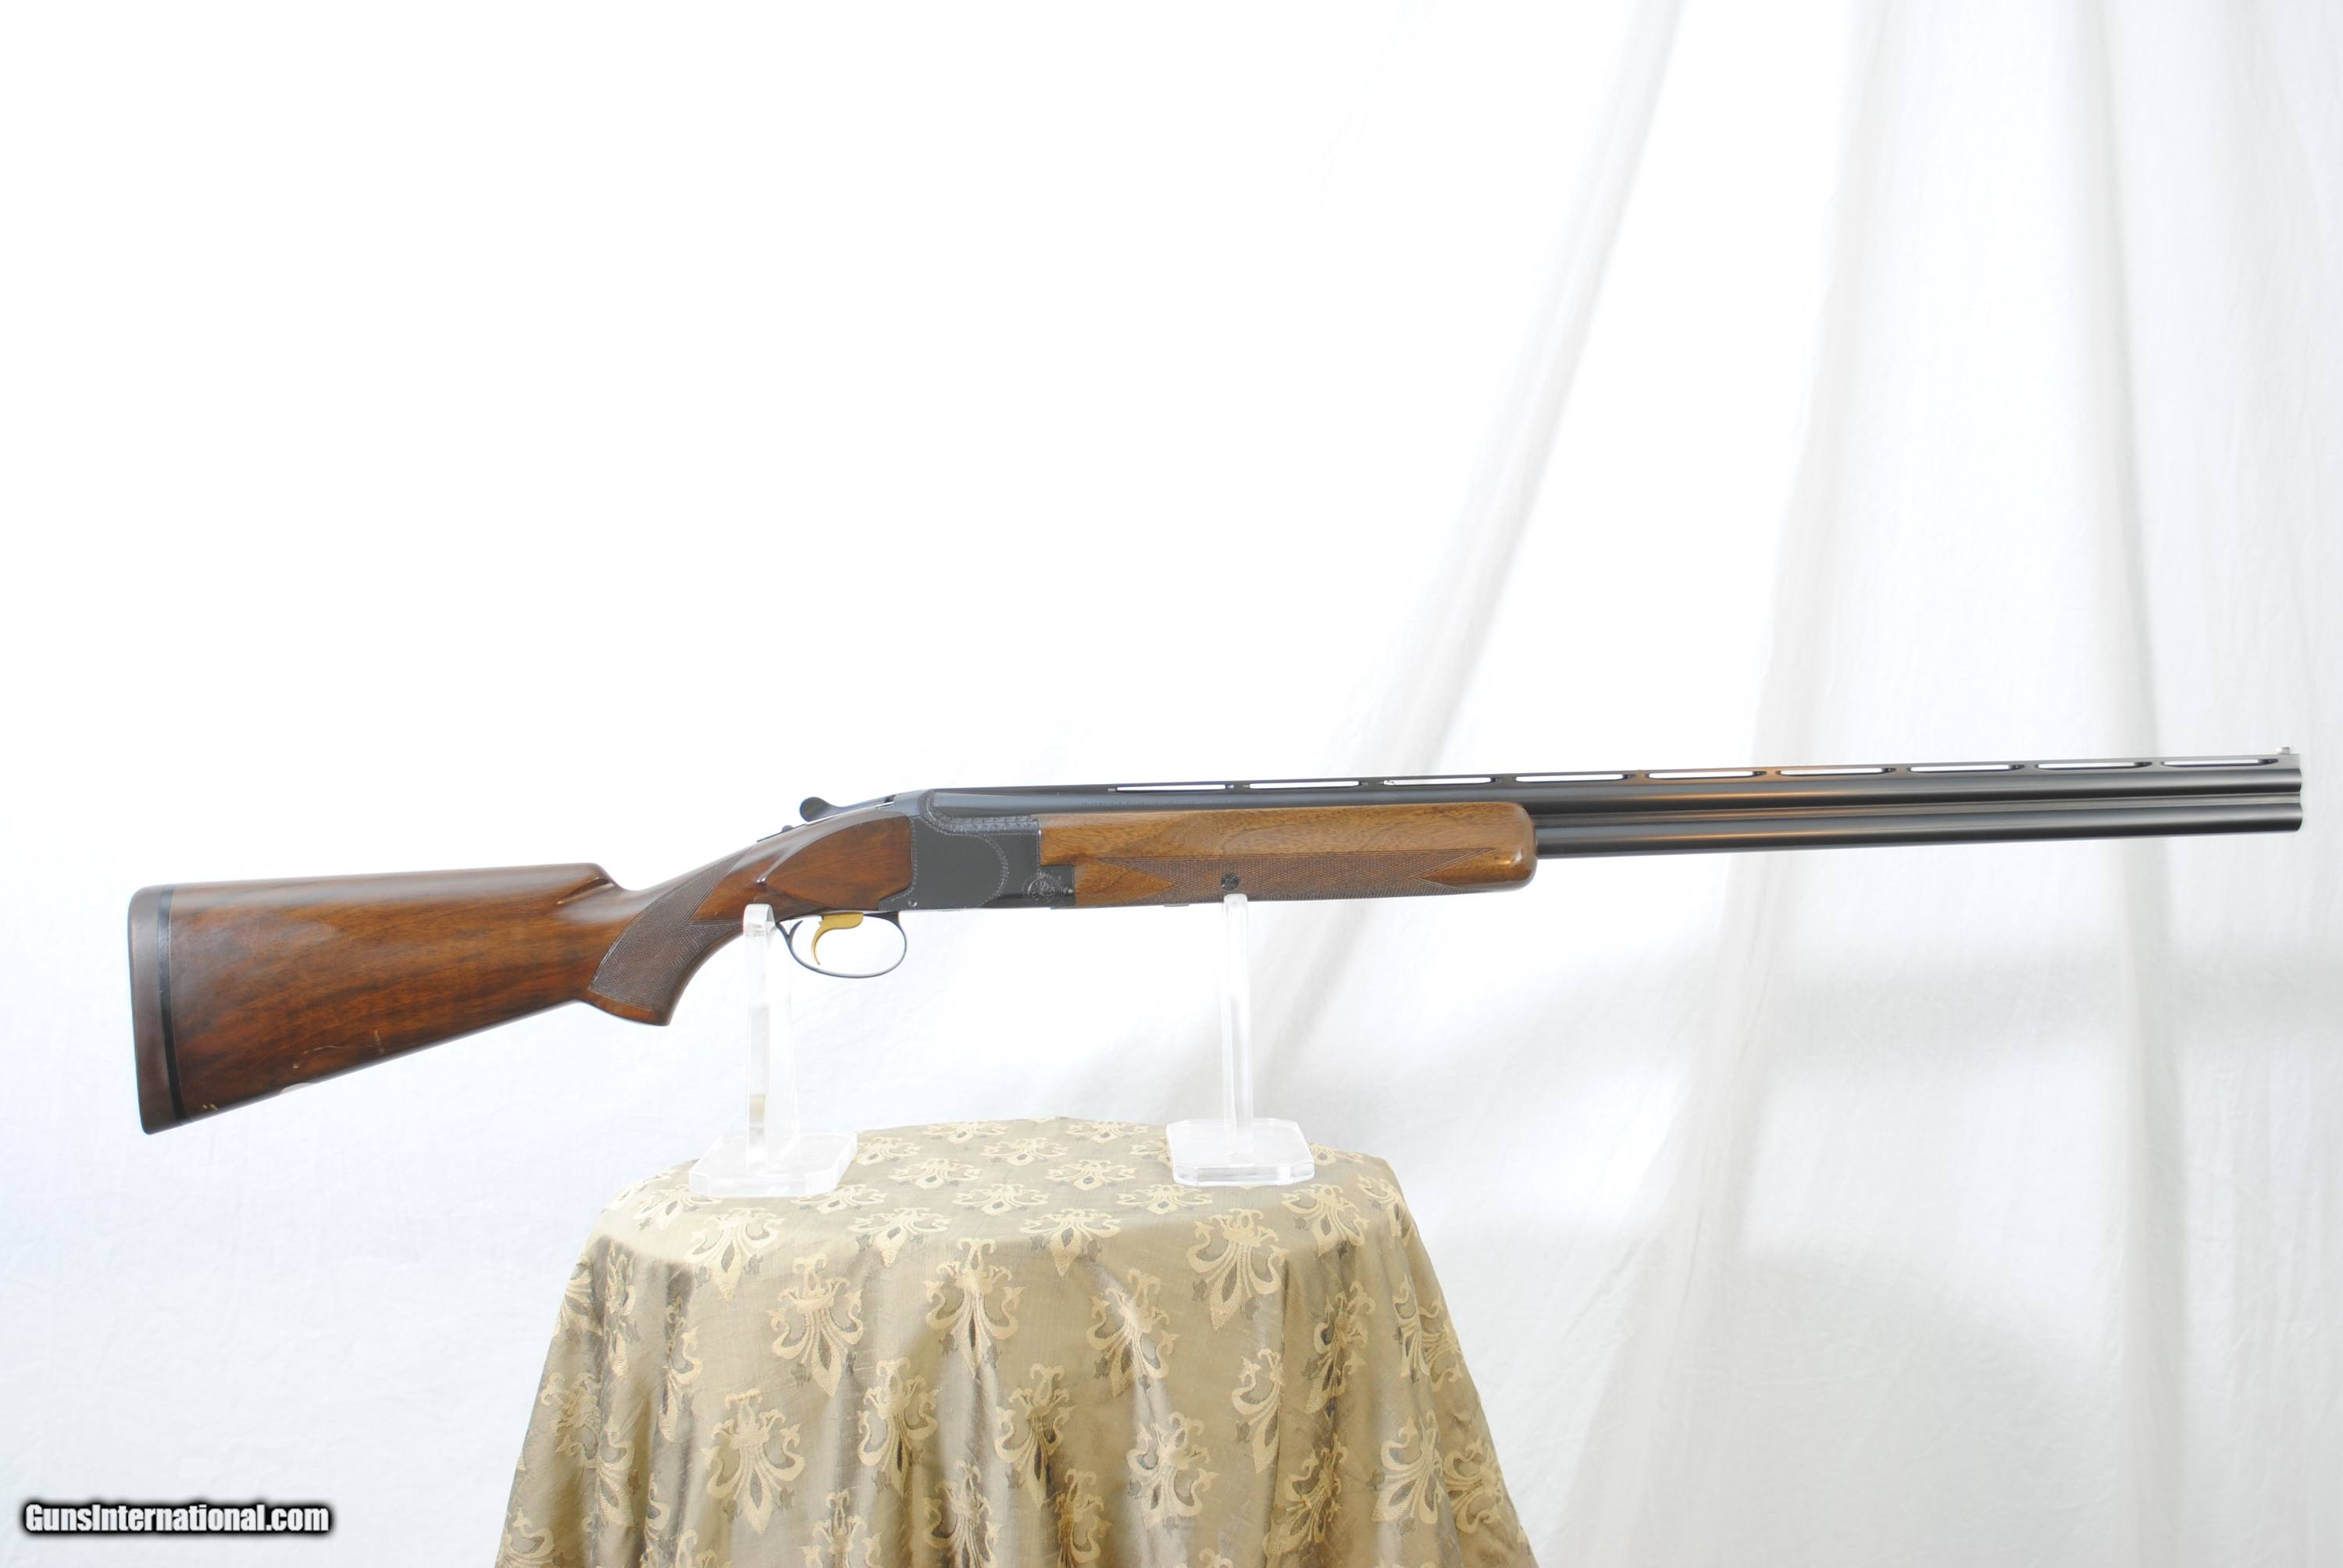 BROWNING SUPERPOSED MODEL FN - A1 TRAP - MADE IN BELGIUM